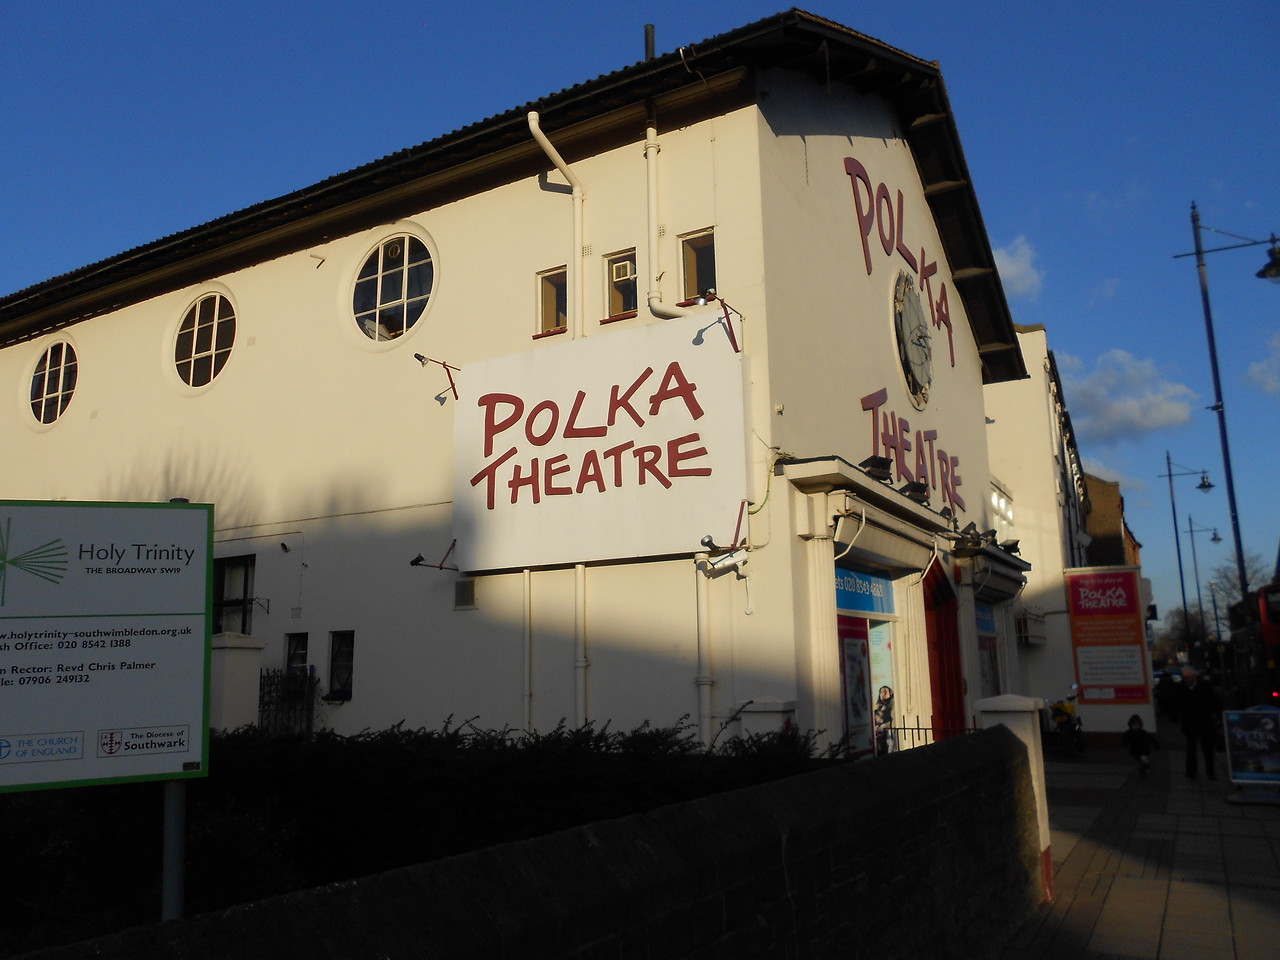 When I visited England in 2006, one of the paces I didn't get to was the Teddy Bear Museum in Stratford-upon-Avon, whose collection included one of the original Fozzie Bear puppets. In 2007 the collection was relocated to the Polka Theatre in Wimbledon.